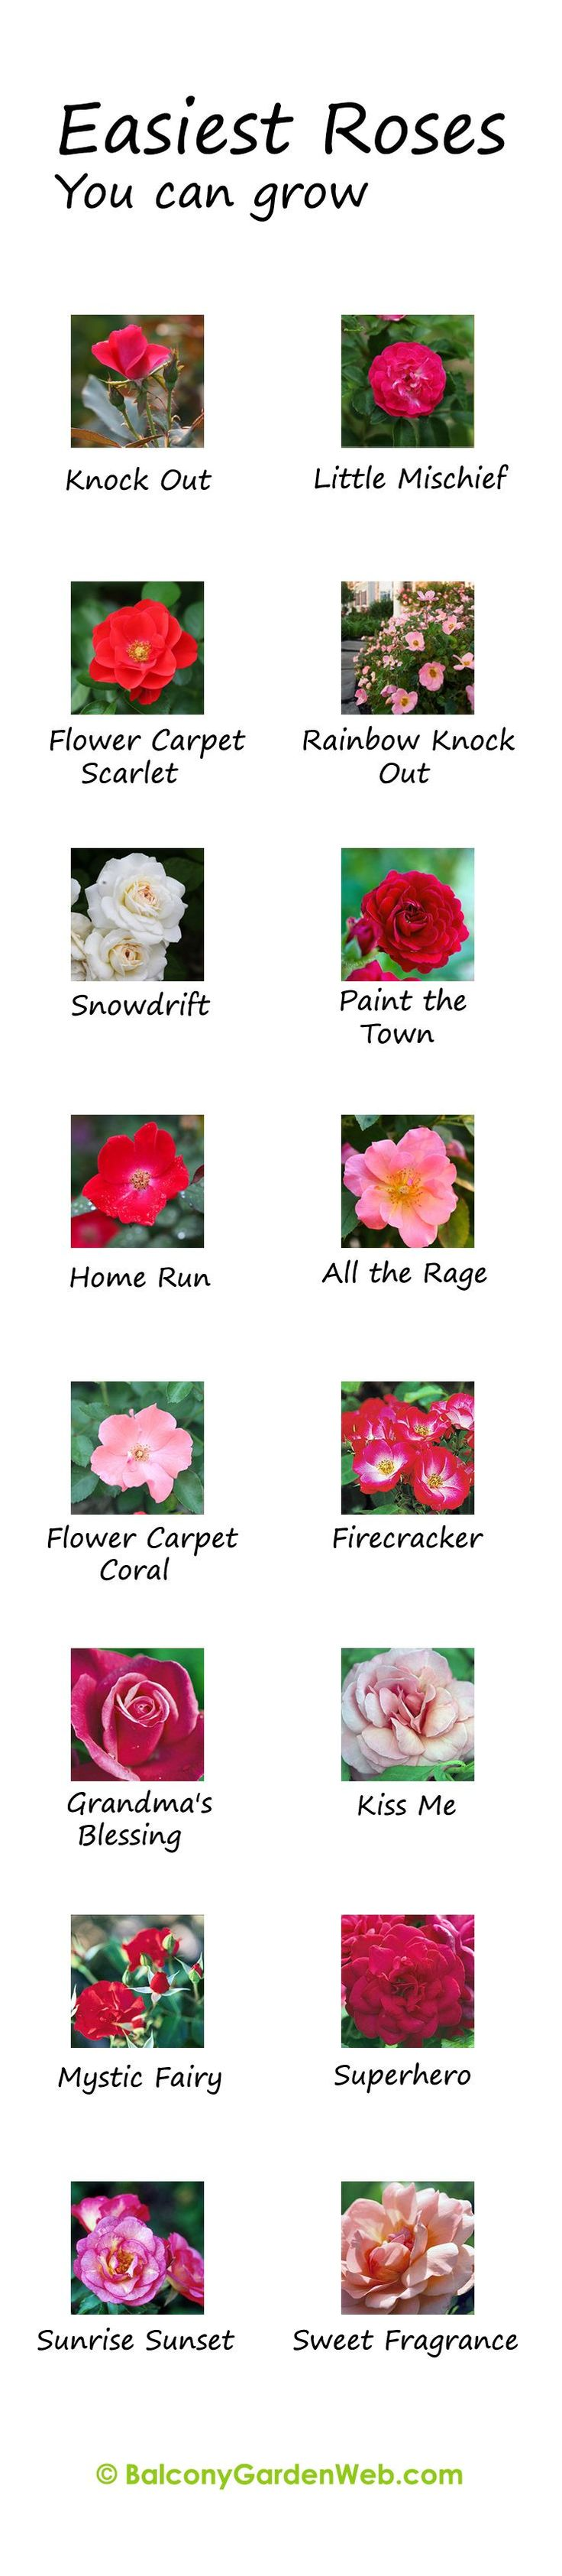 What are the easiest rose varieties? You might have known but the chart given here can be useful for you.